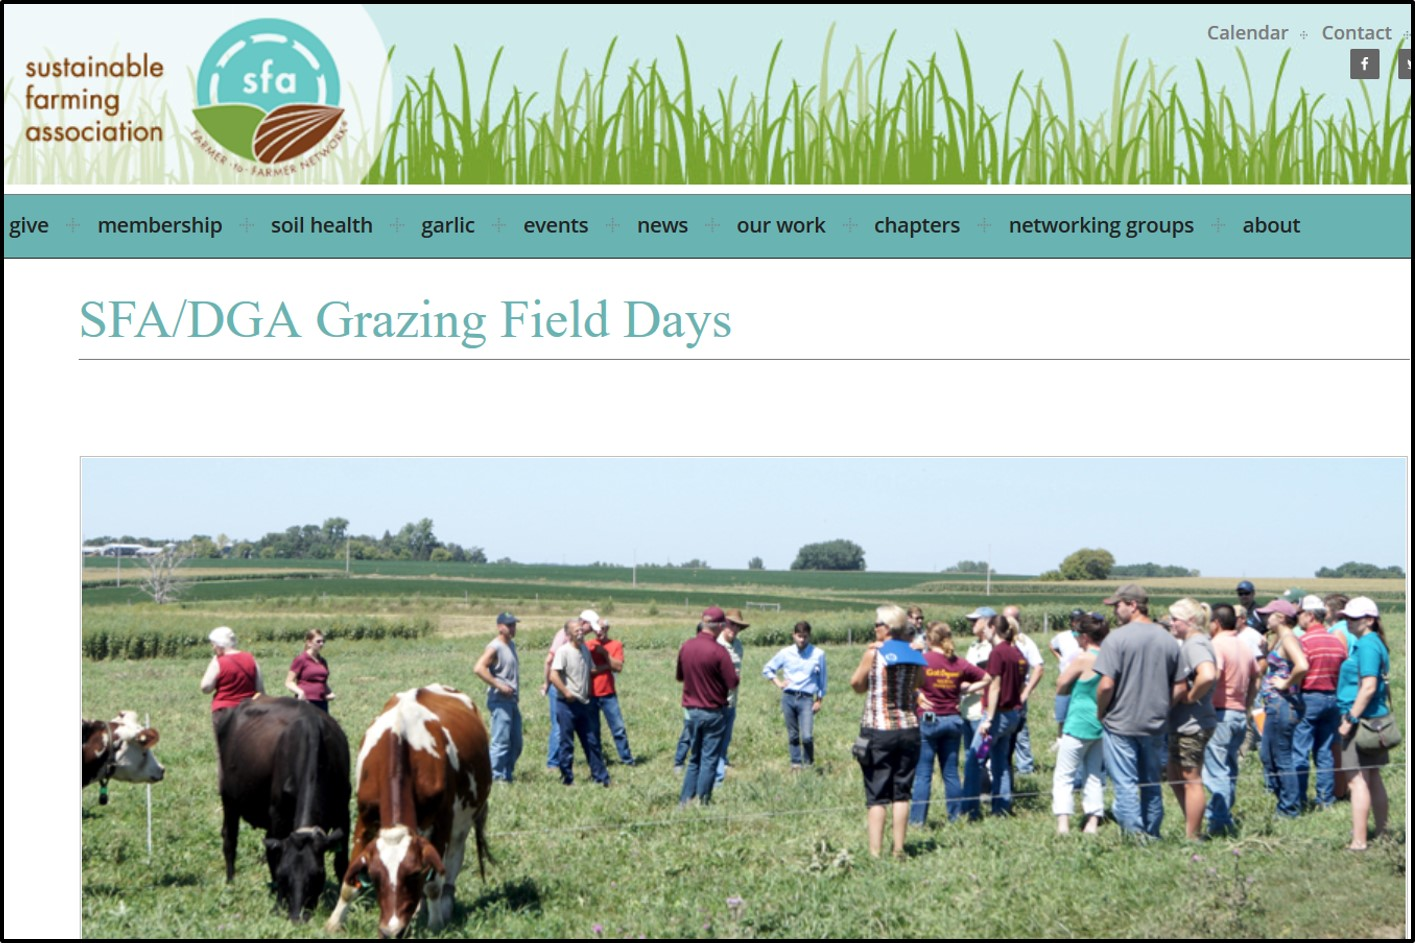 SFA and DGA field days